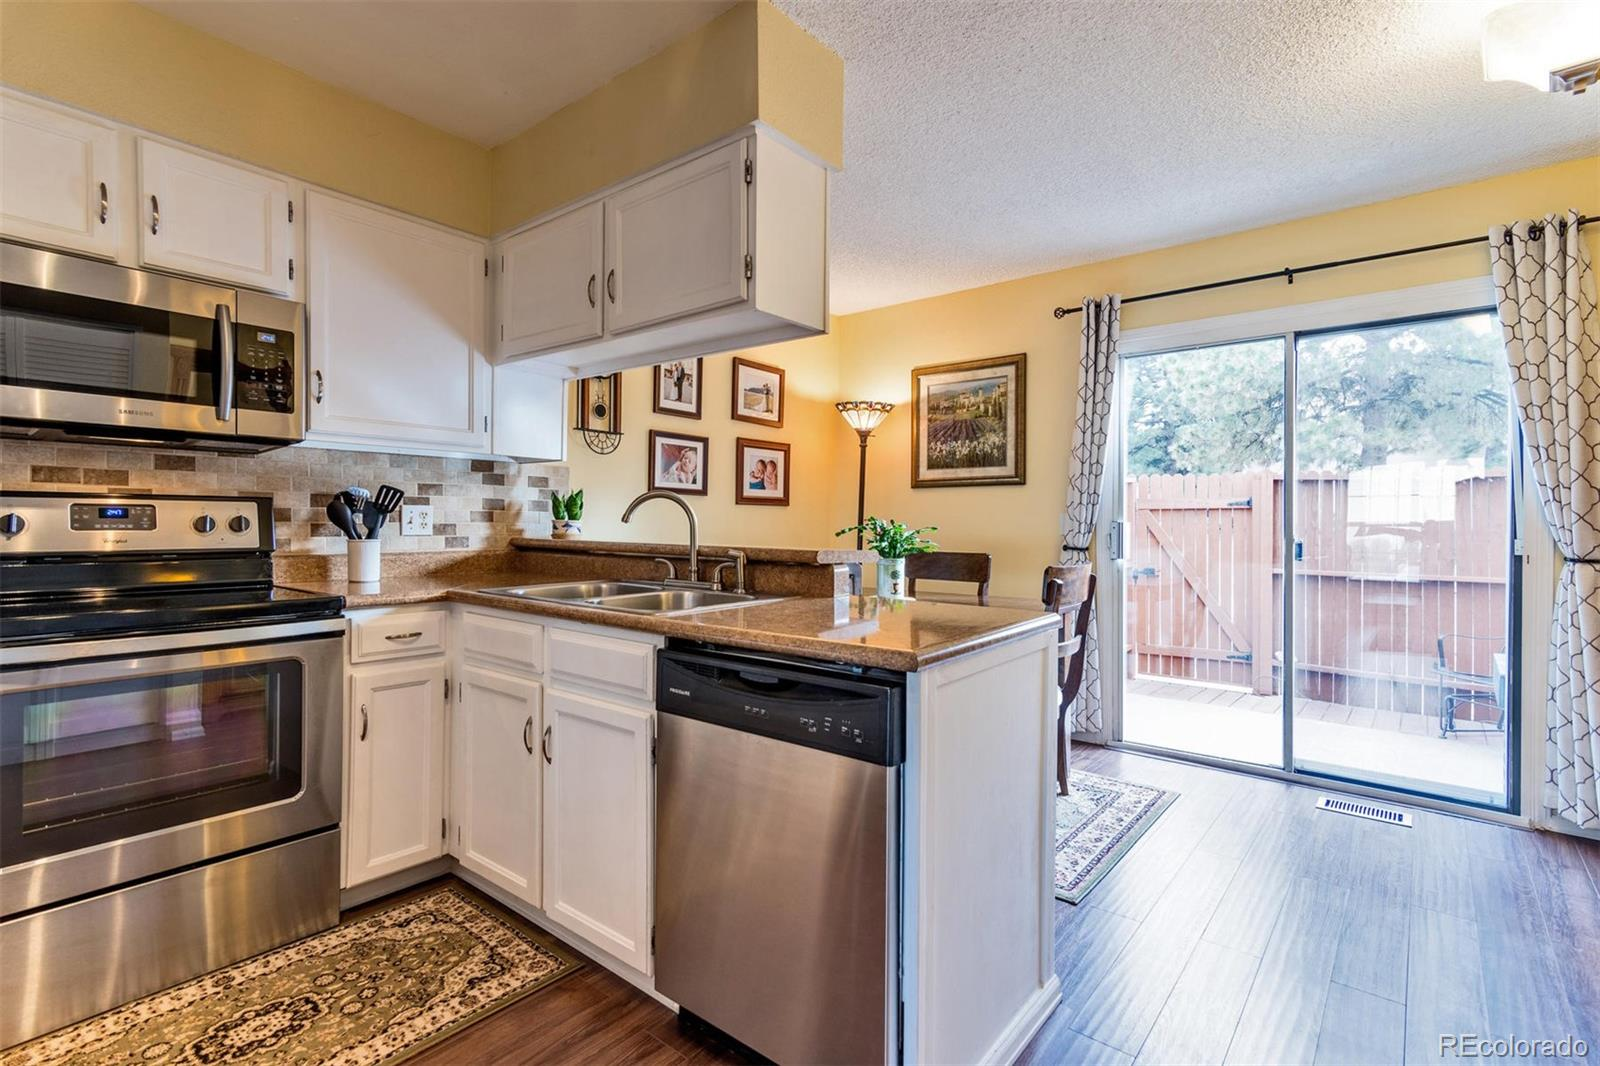 MLS# 6379353 - 12 - 8846 W Dartmouth Place, Lakewood, CO 80227